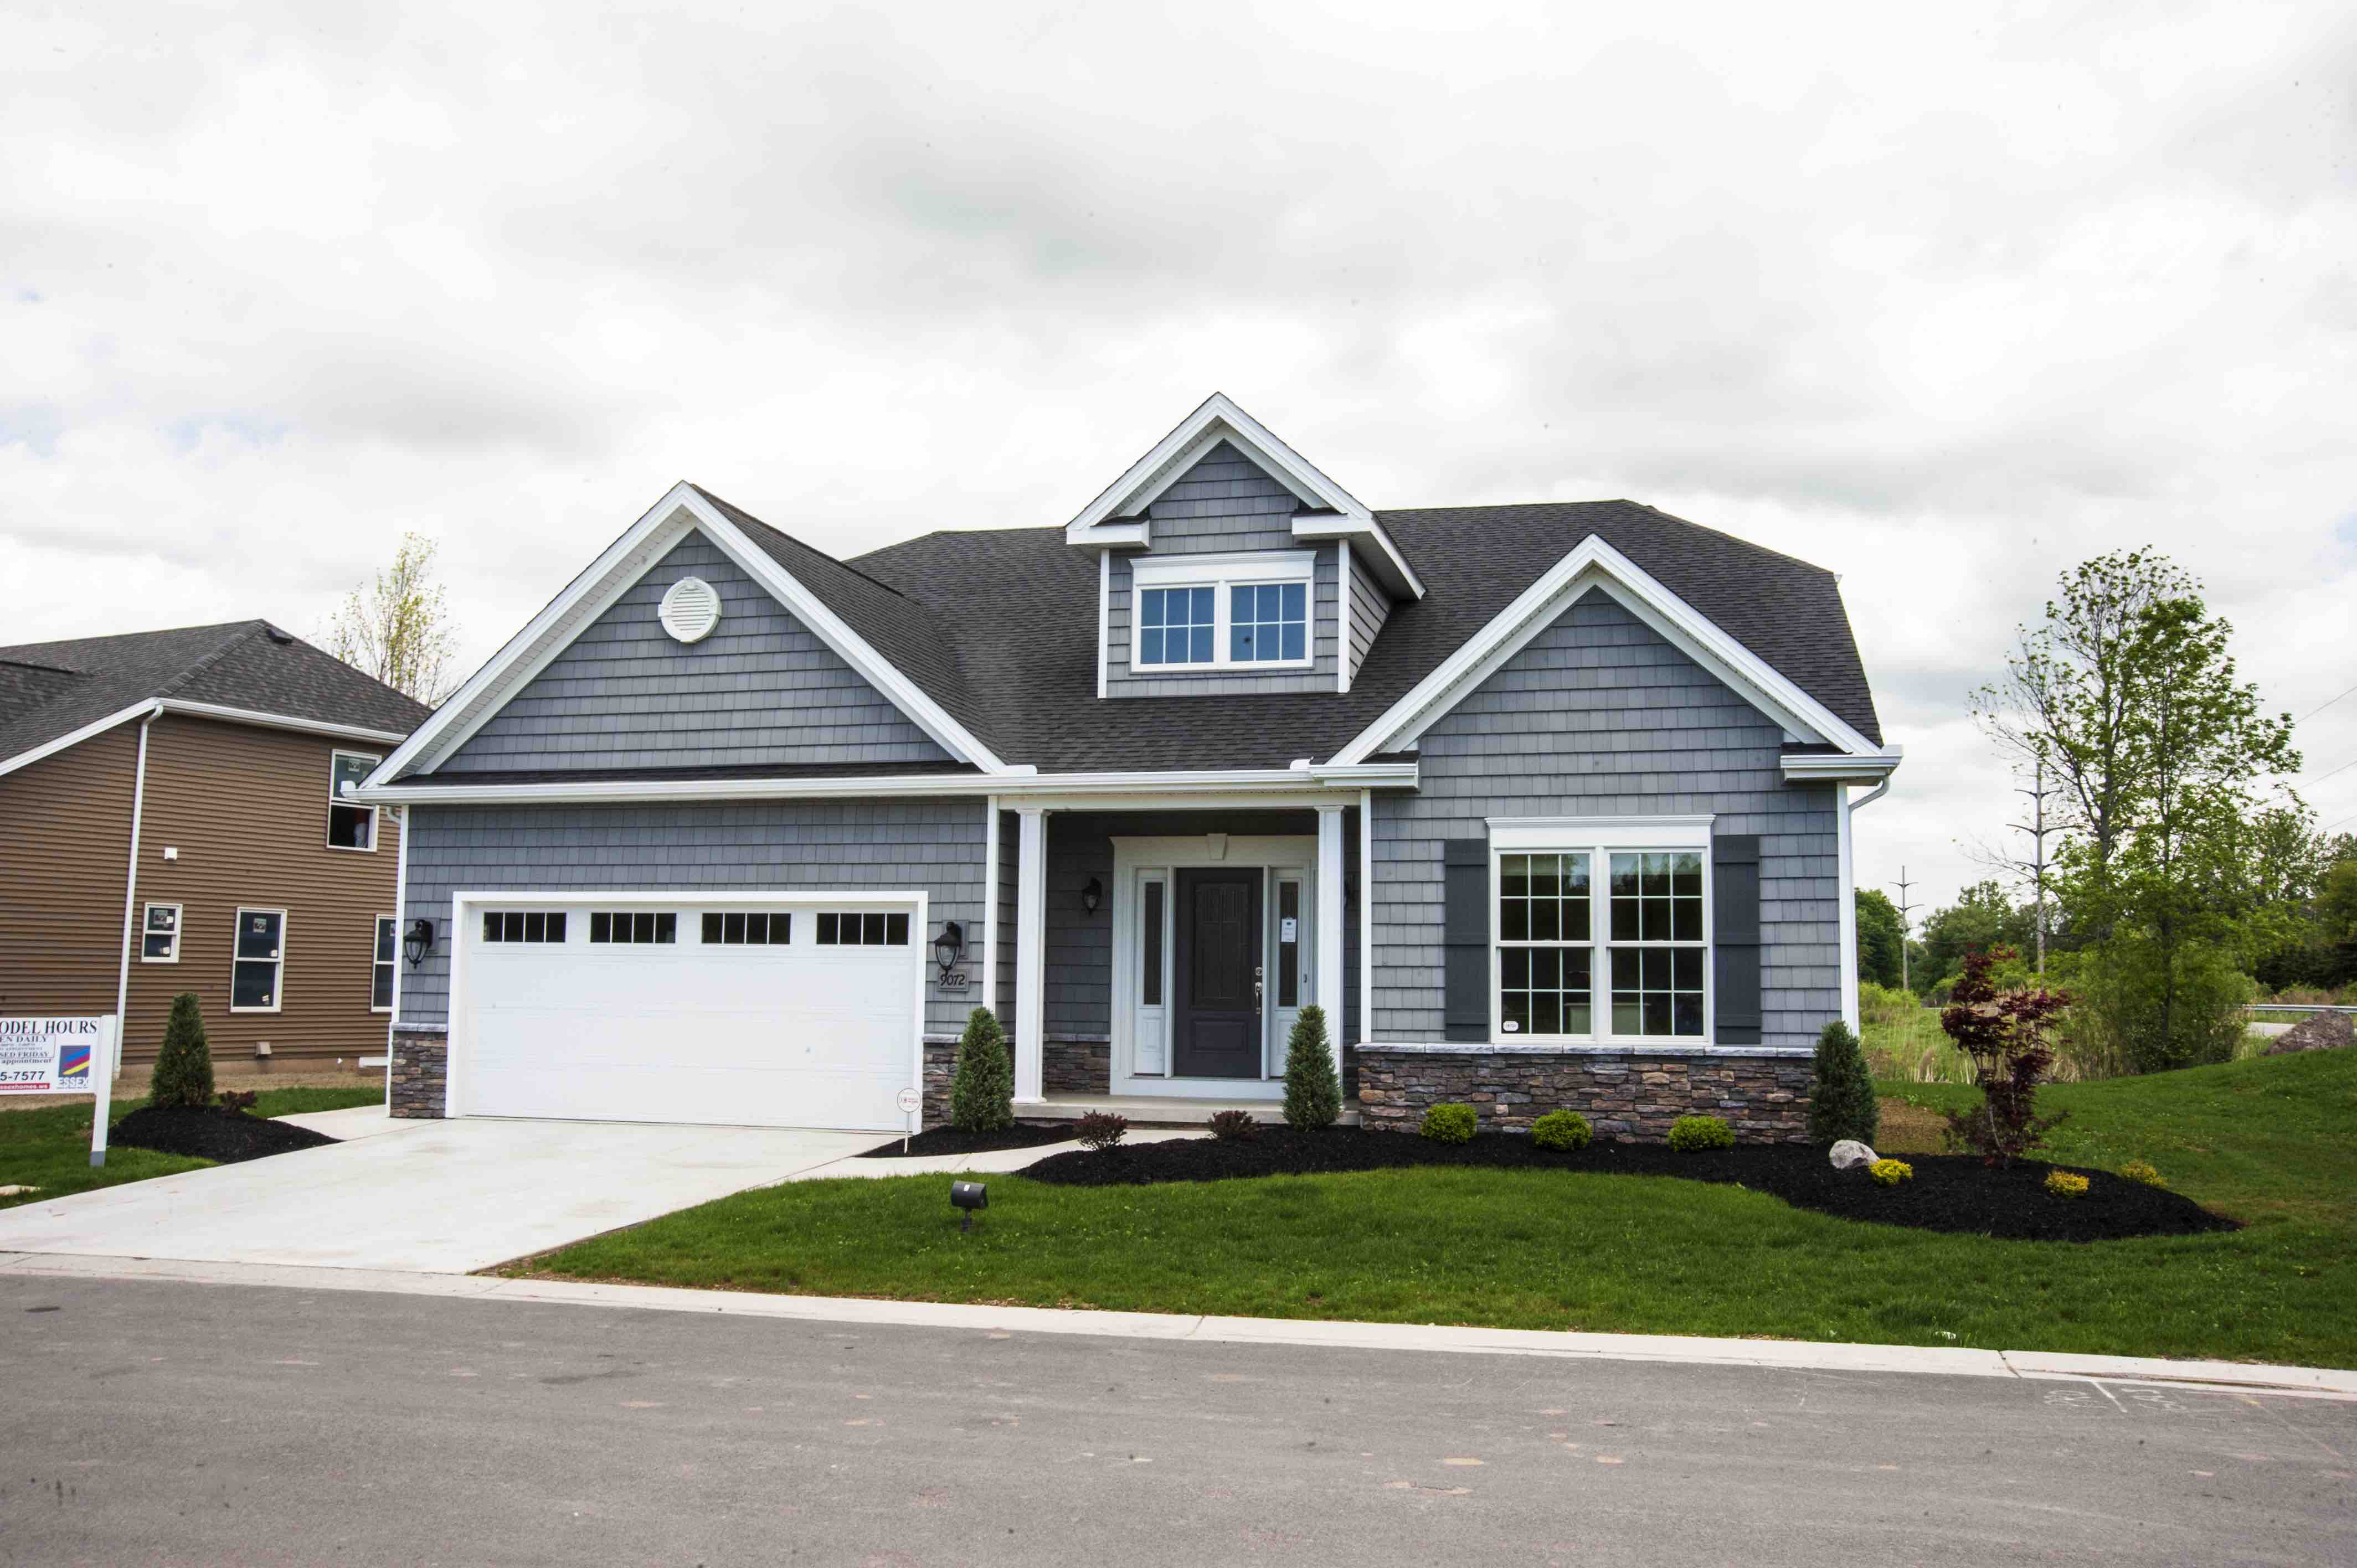 Fantastic Featured Home Essex Homes Showcases Patio Homes In Clarence Largest Home Design Picture Inspirations Pitcheantrous